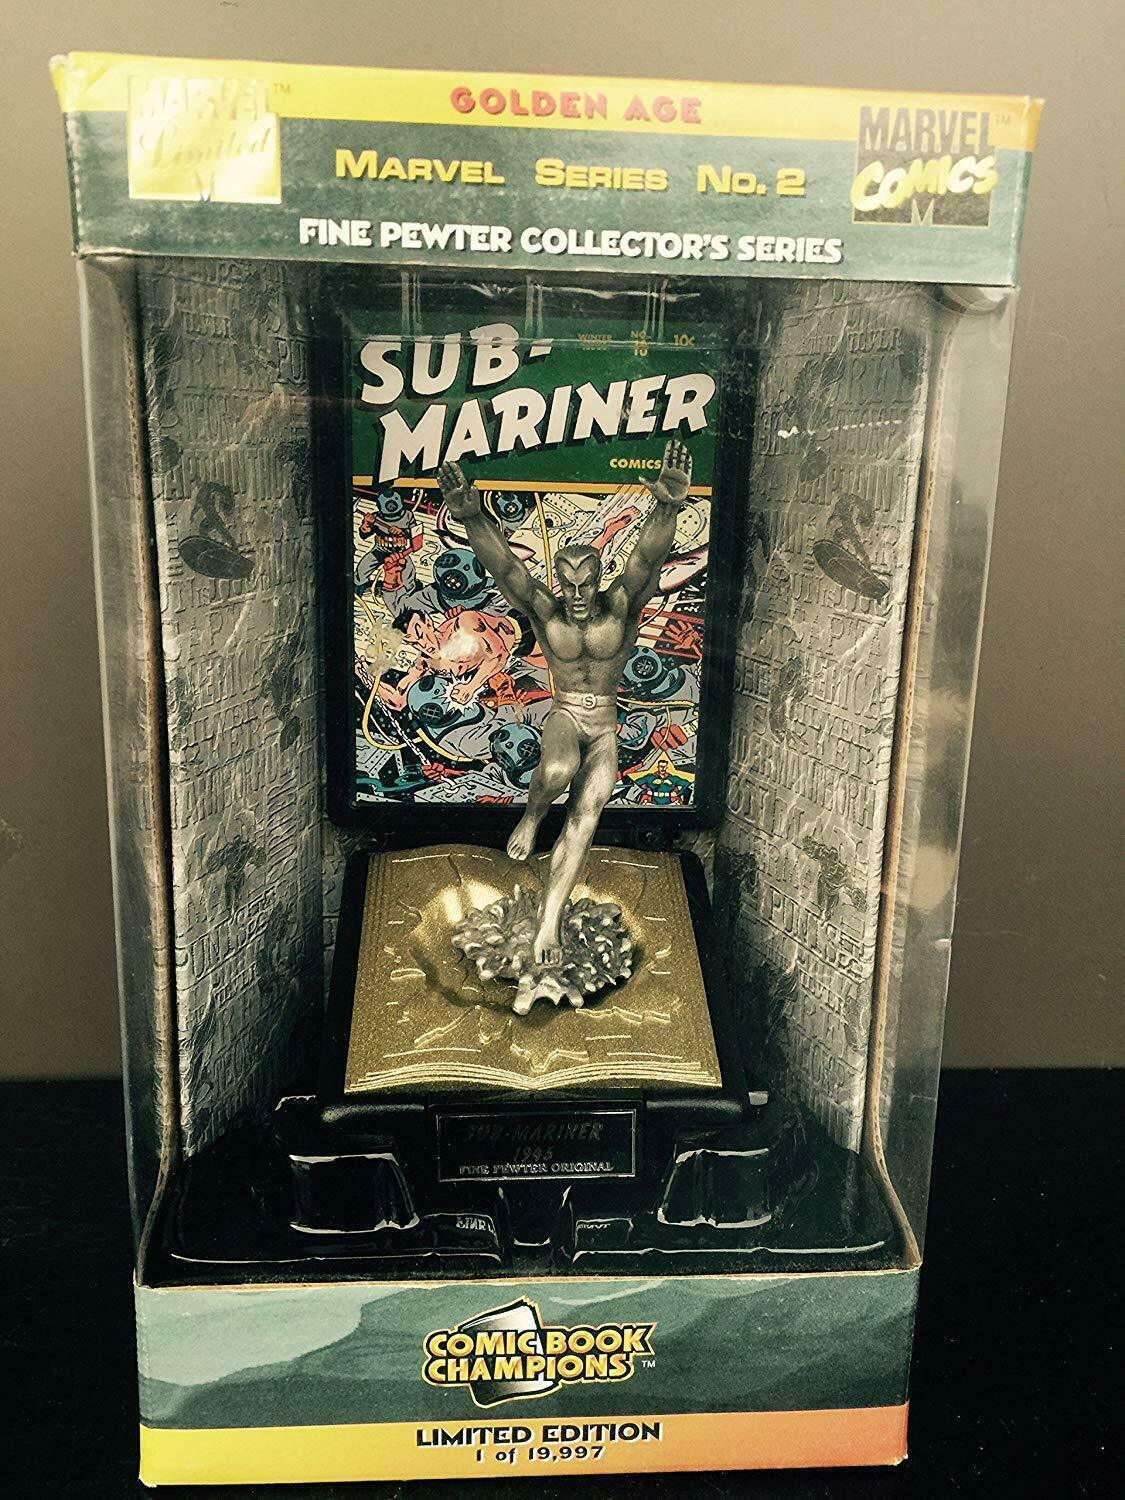 Marvel Golden Age Sub-mariner Fine Pewter Collector Series Figure